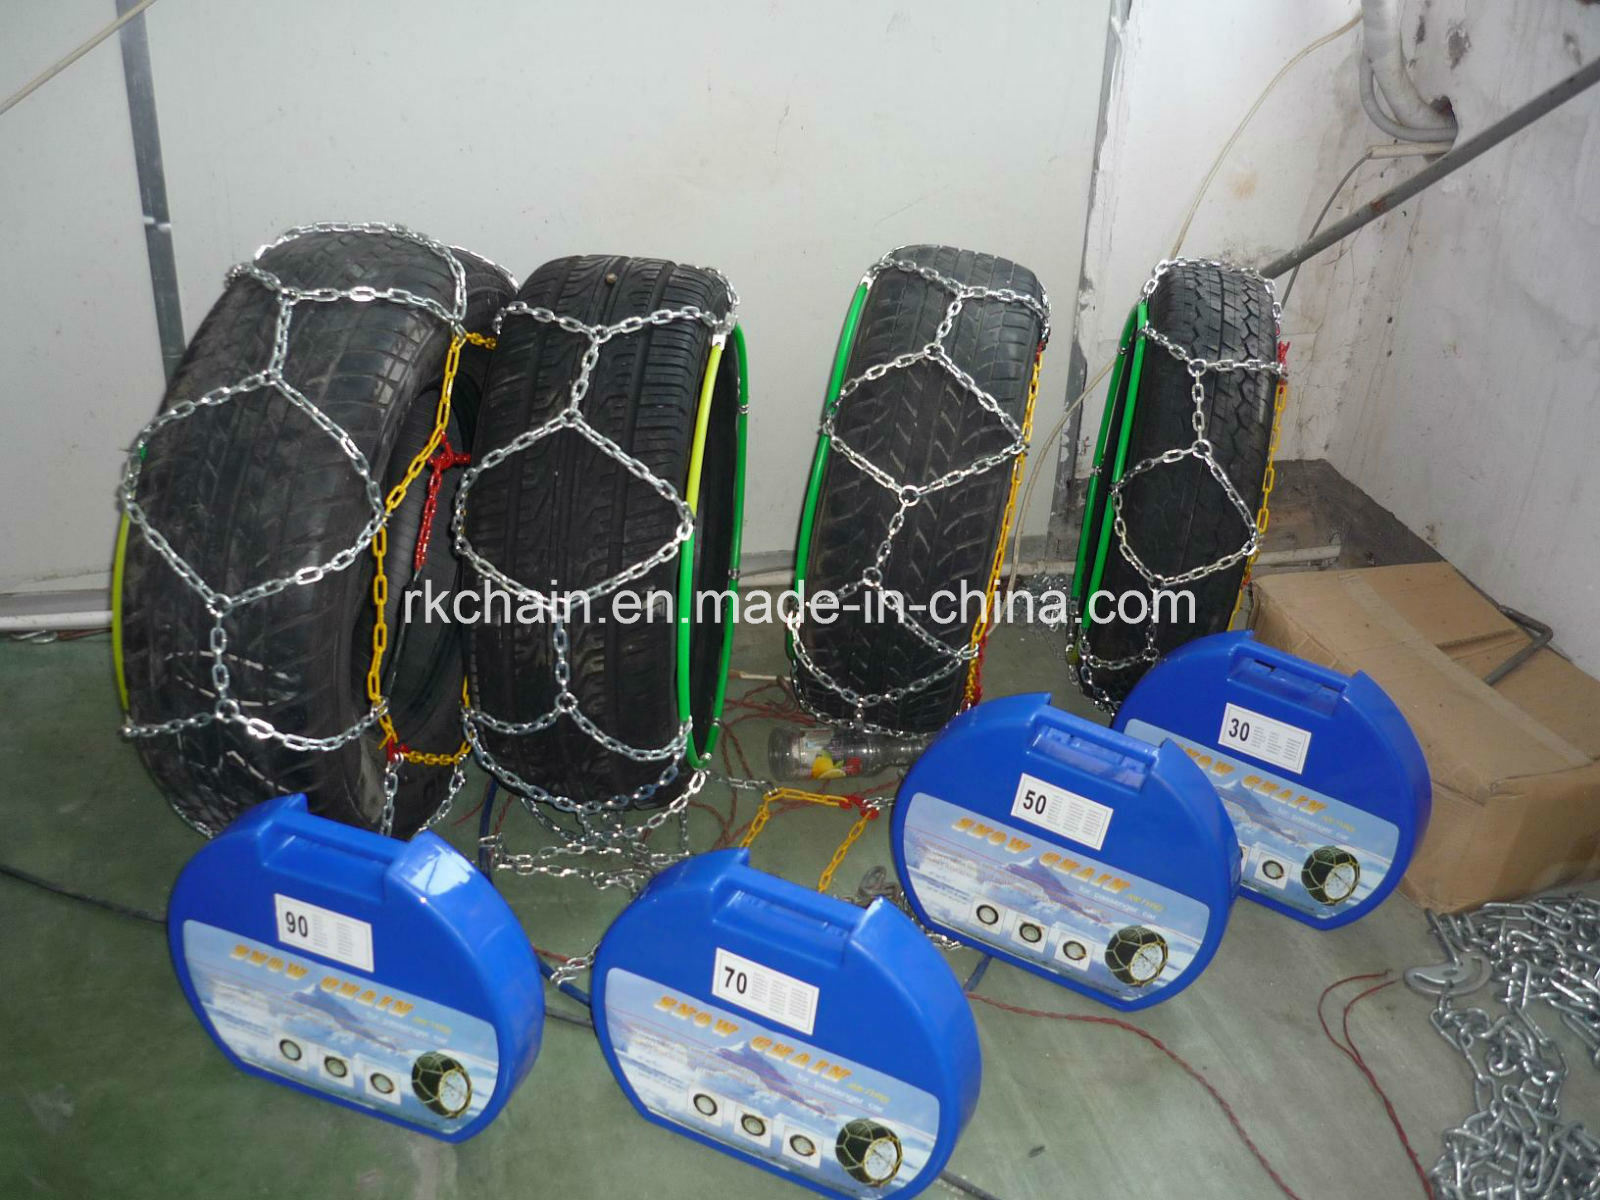 Tire Chain with Complete Specifications and Reliable Quality